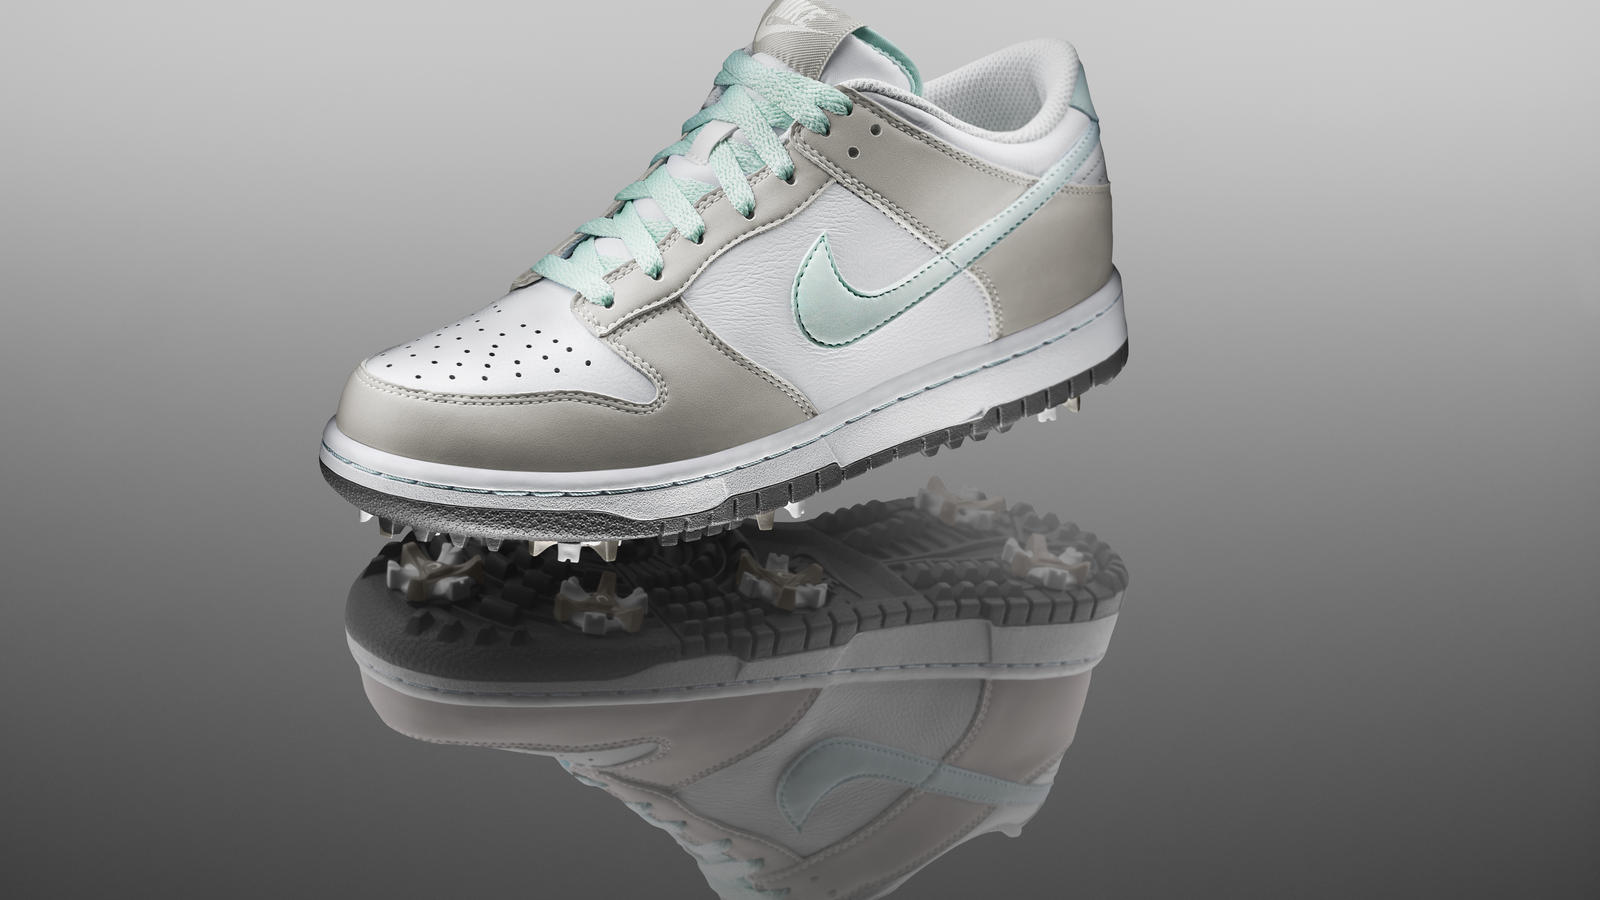 official photos c39c9 48b5a Nike Golf Pays Tribute to the Iconic Nike Dunk Shoe - Nike News